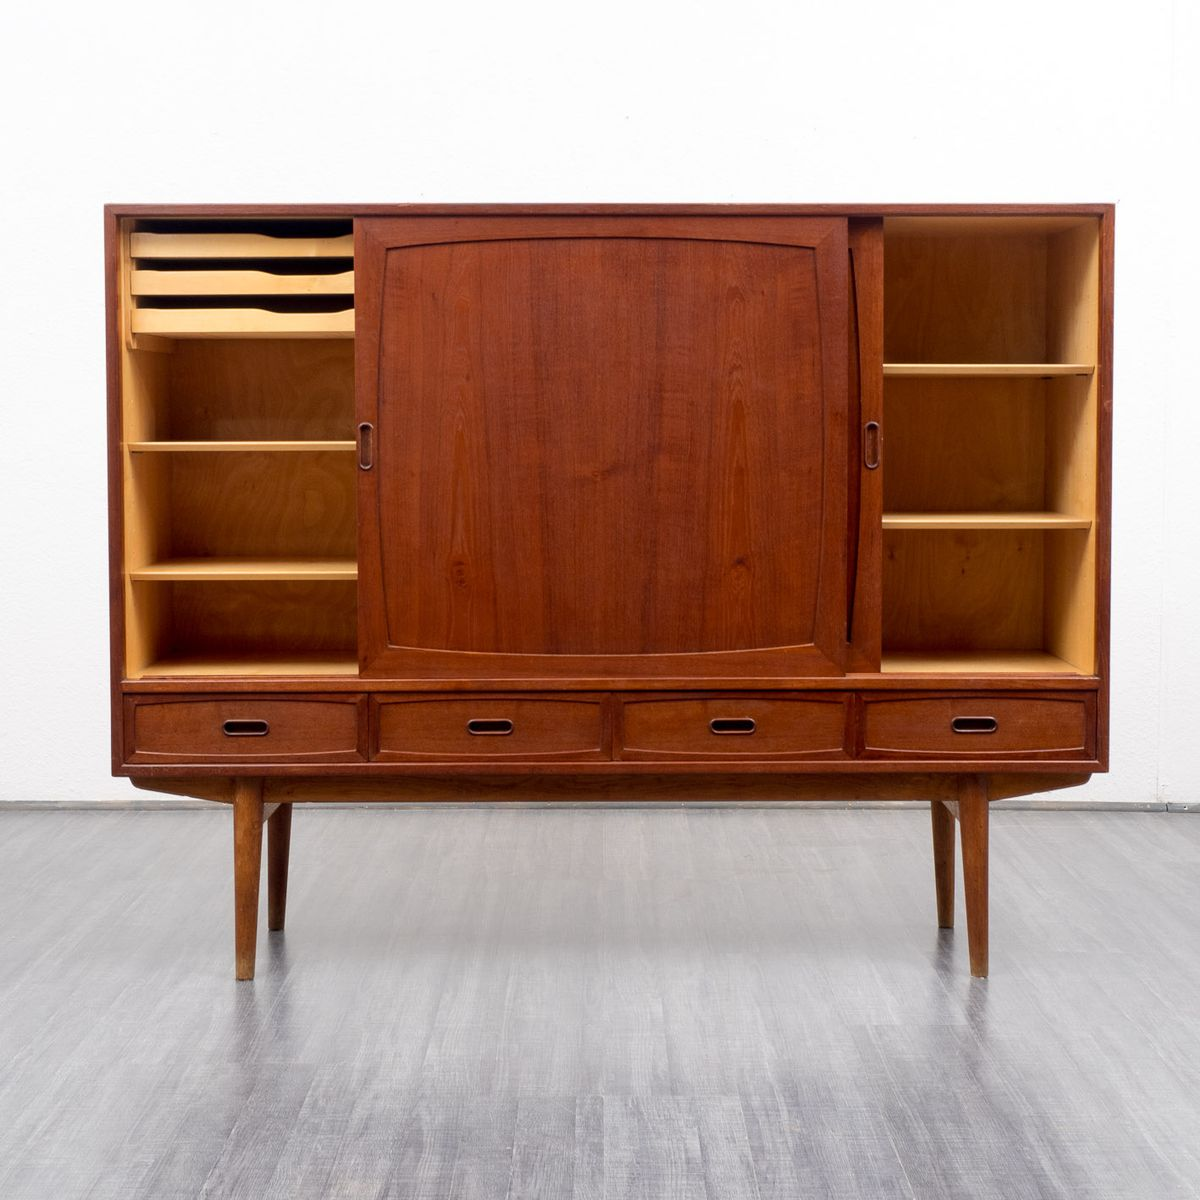 skandinavisches mid century teakholz sideboard 1960er bei pamono kaufen. Black Bedroom Furniture Sets. Home Design Ideas